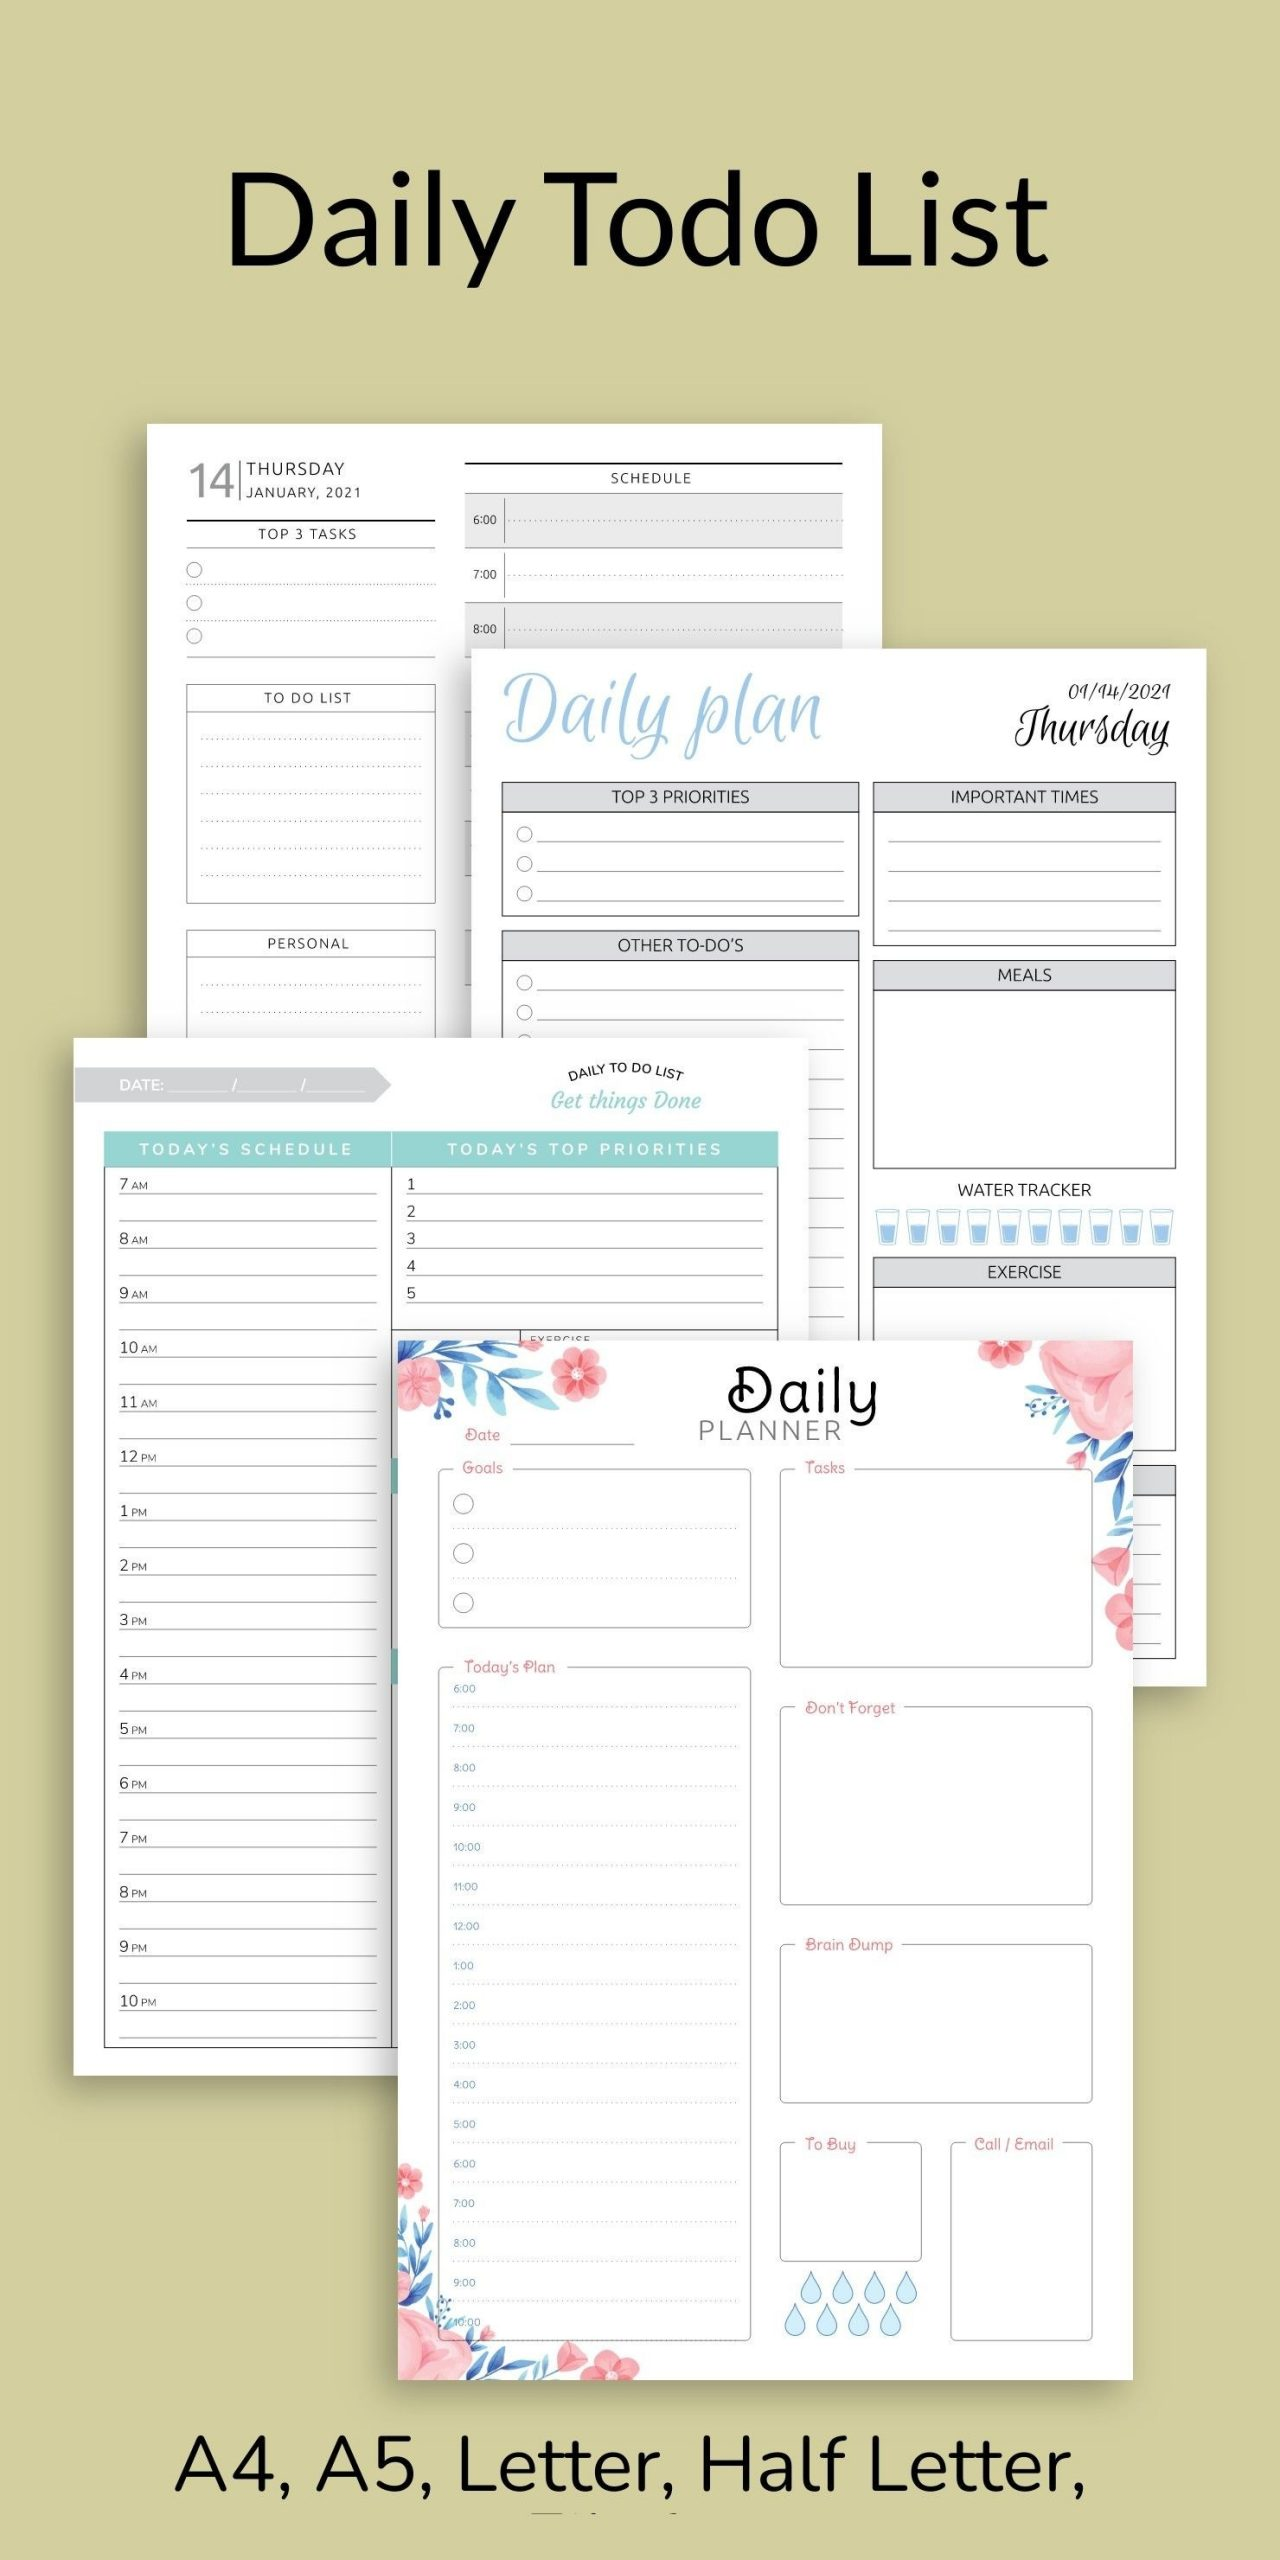 Daily Planner Printable Daily Hourly Schedule Template Am/Pm-Calendar January 2021 Hourly Daily Task List Template